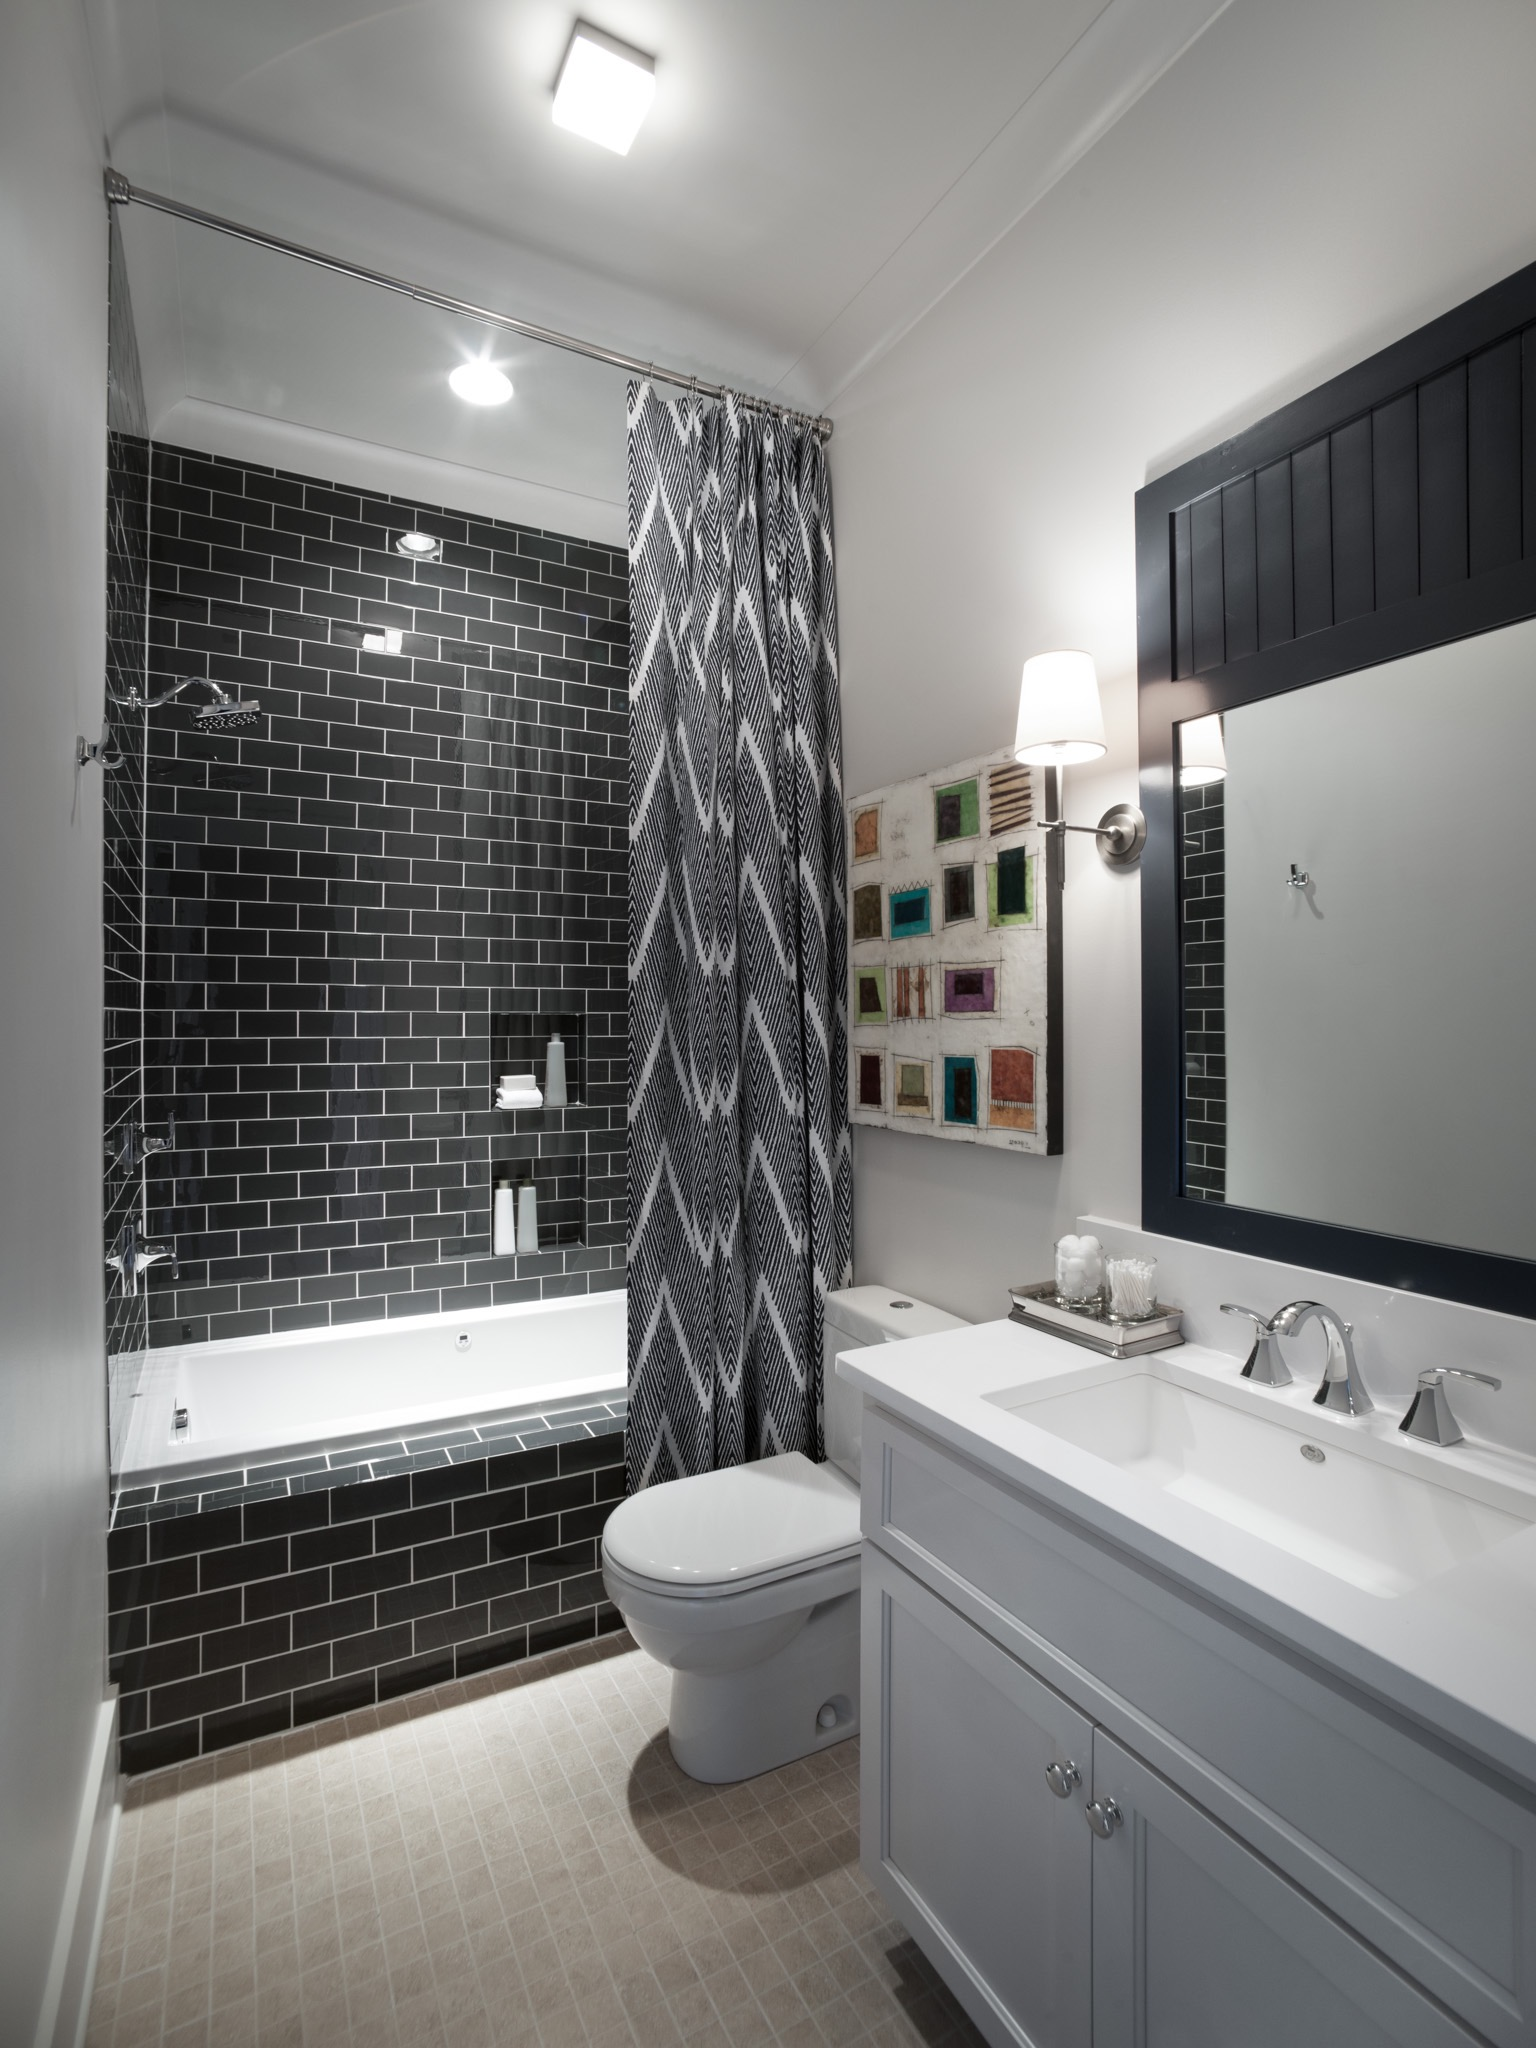 Black And White Decor Theme For Shower Room 15115